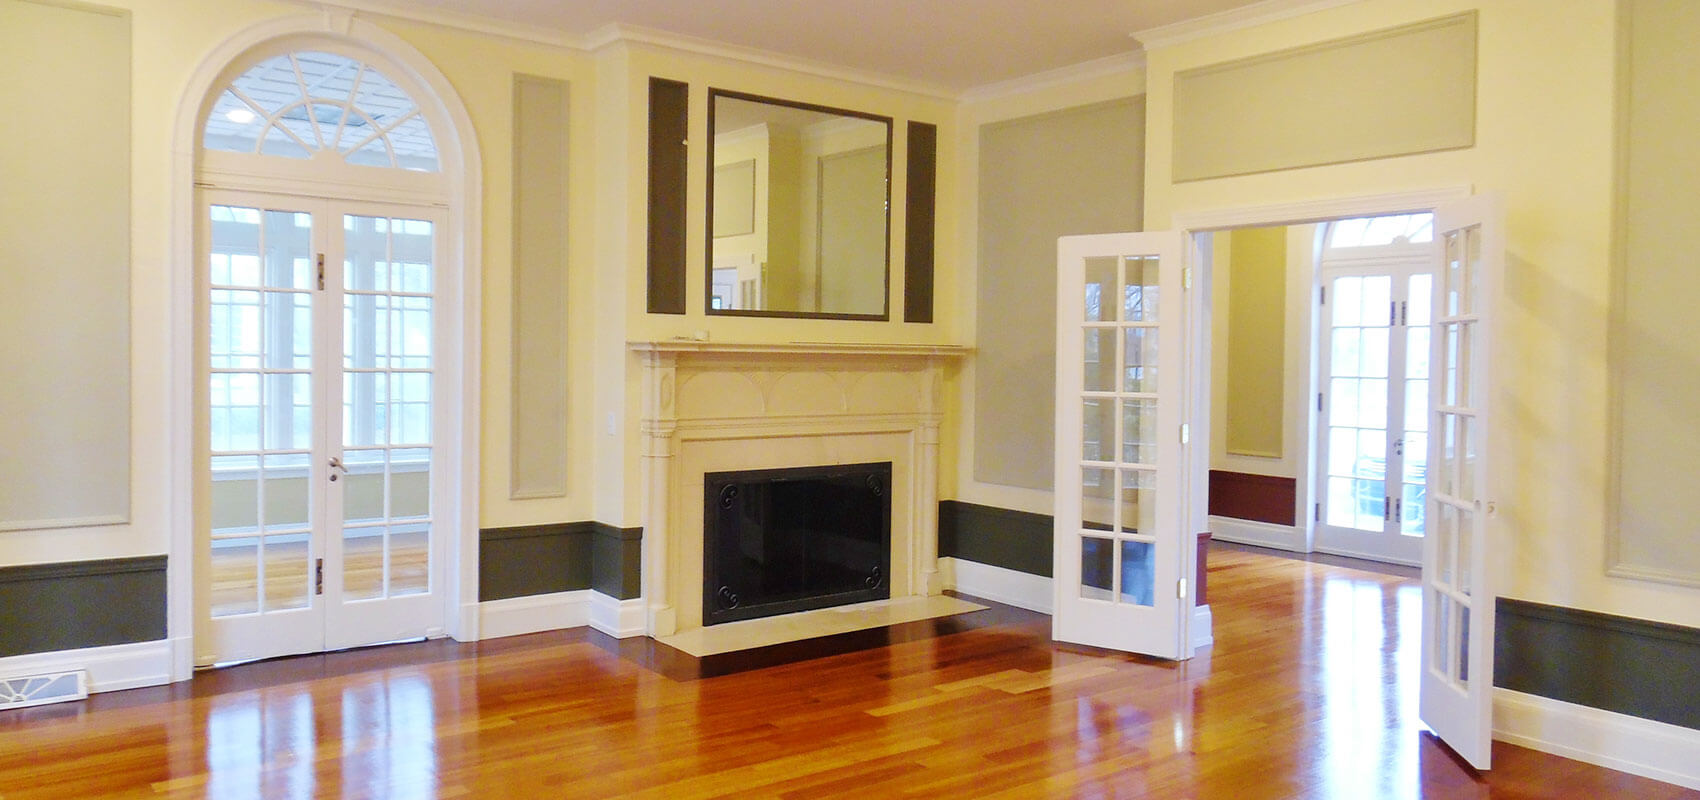 Anderson Pro Painting Inc Painting Services Mechanicsburg Pa